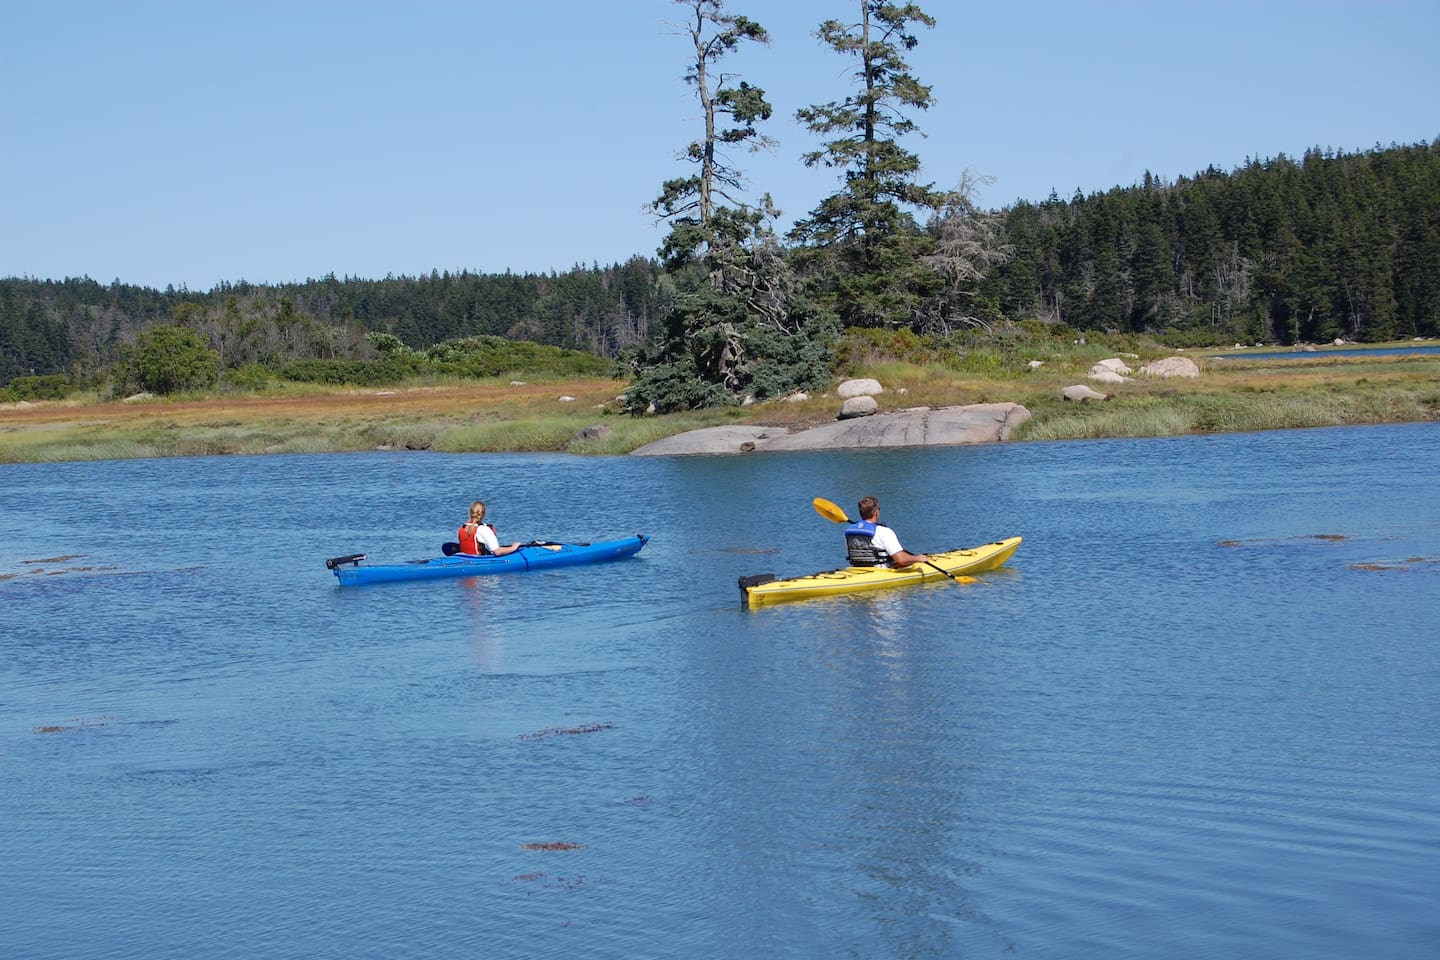 Kayaking in the basin nearby